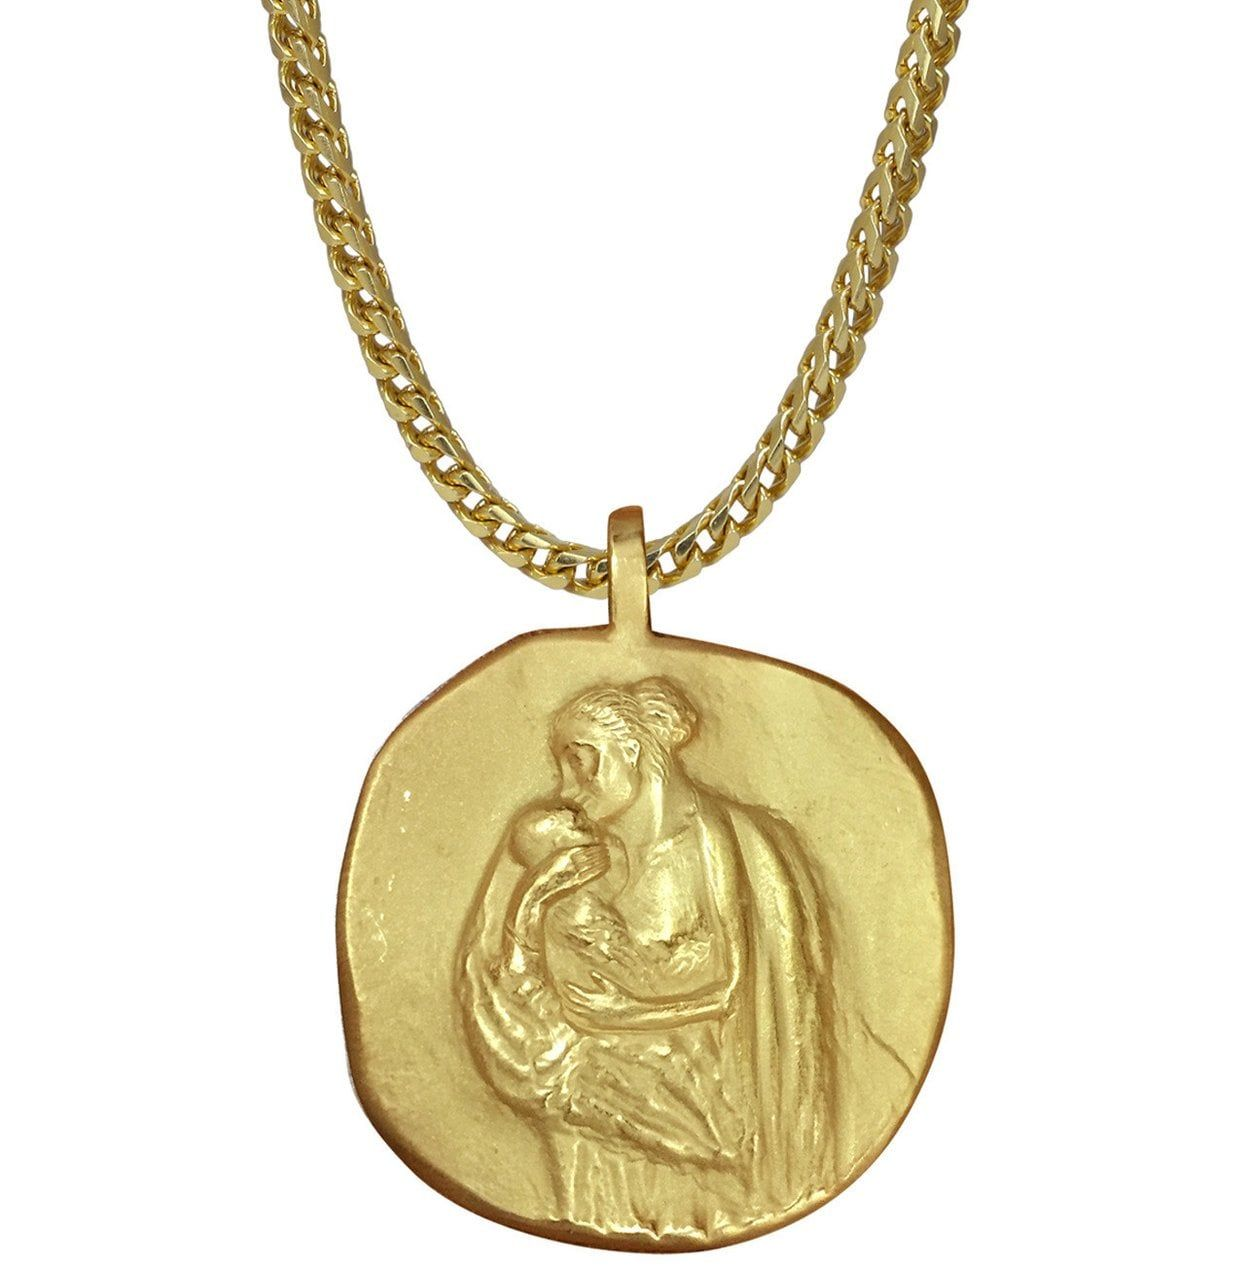 Kim Kardashian S Been Wearing These New Yeezy Necklaces Since Last Year Pricing Jewelry Luxury Jewelry Store Jewelry